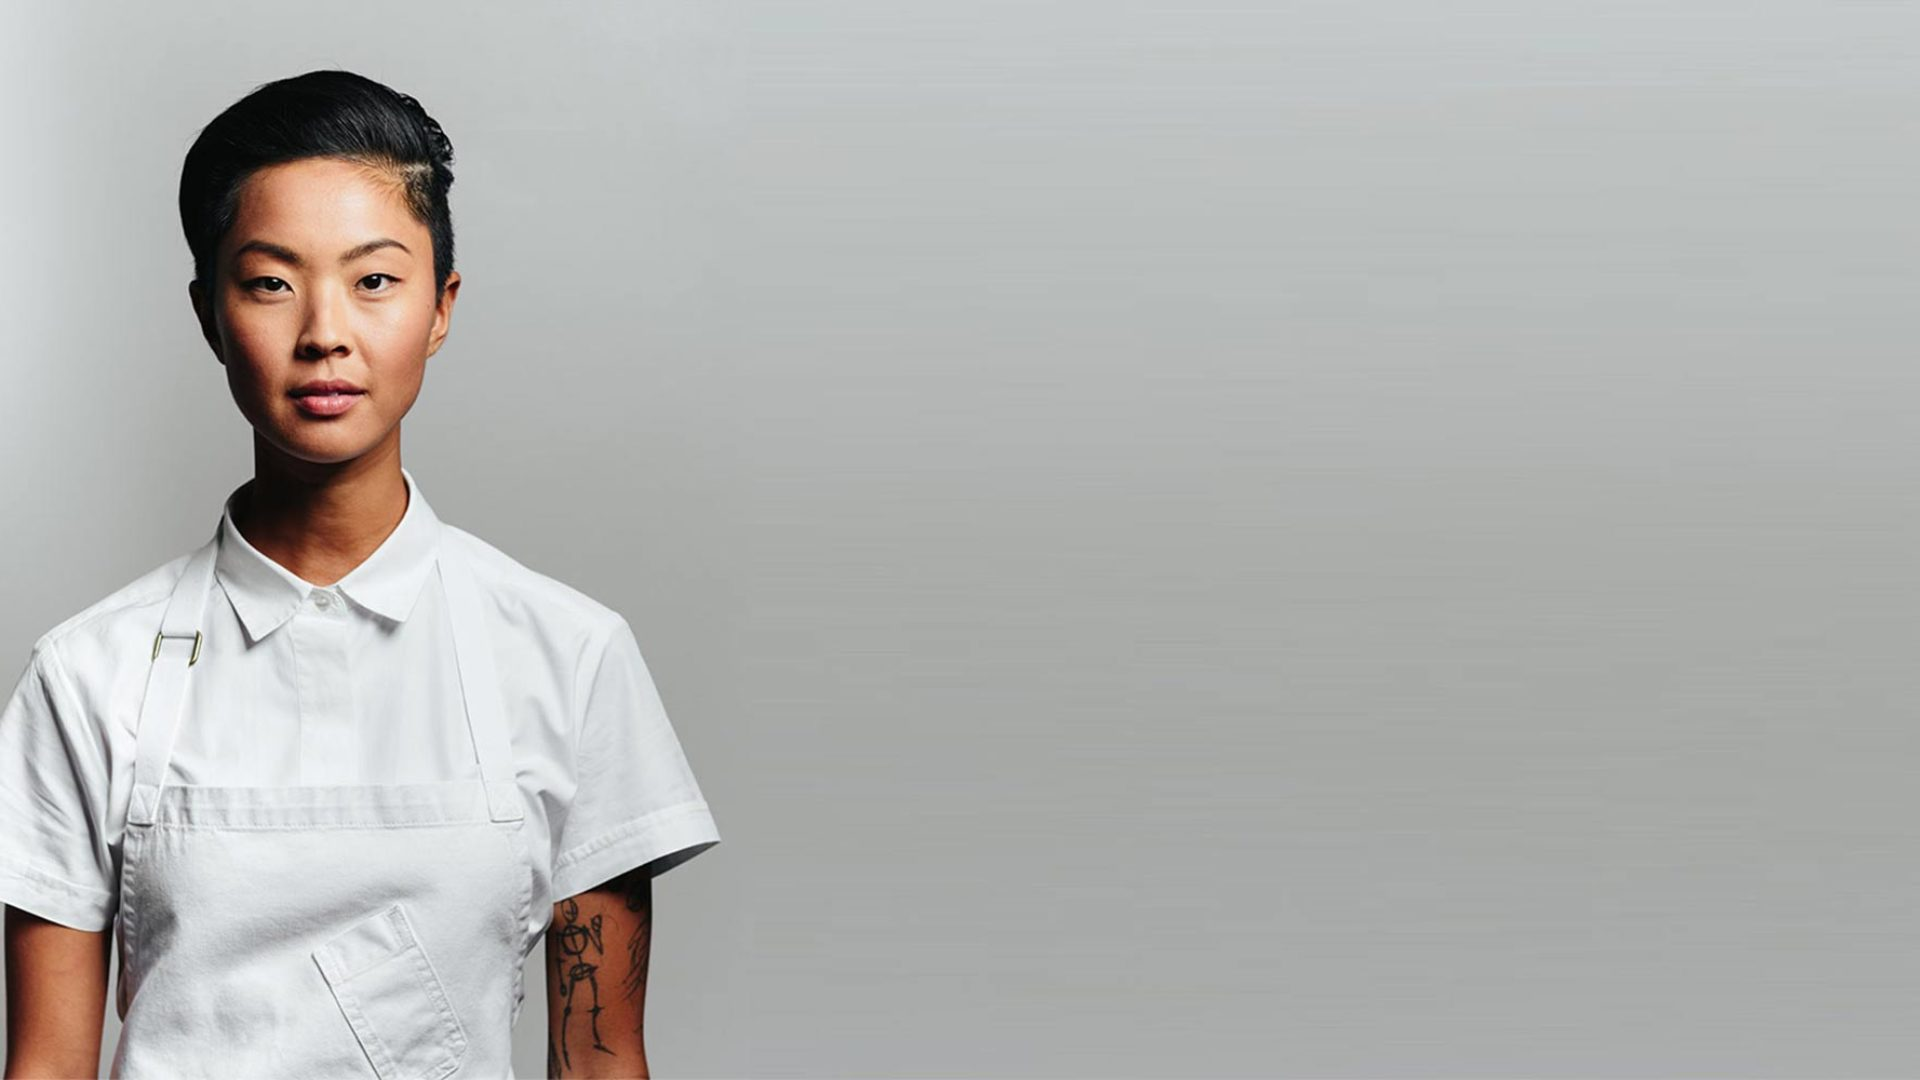 Kristen Kish a Korean chef facing the camera infront of a grey background